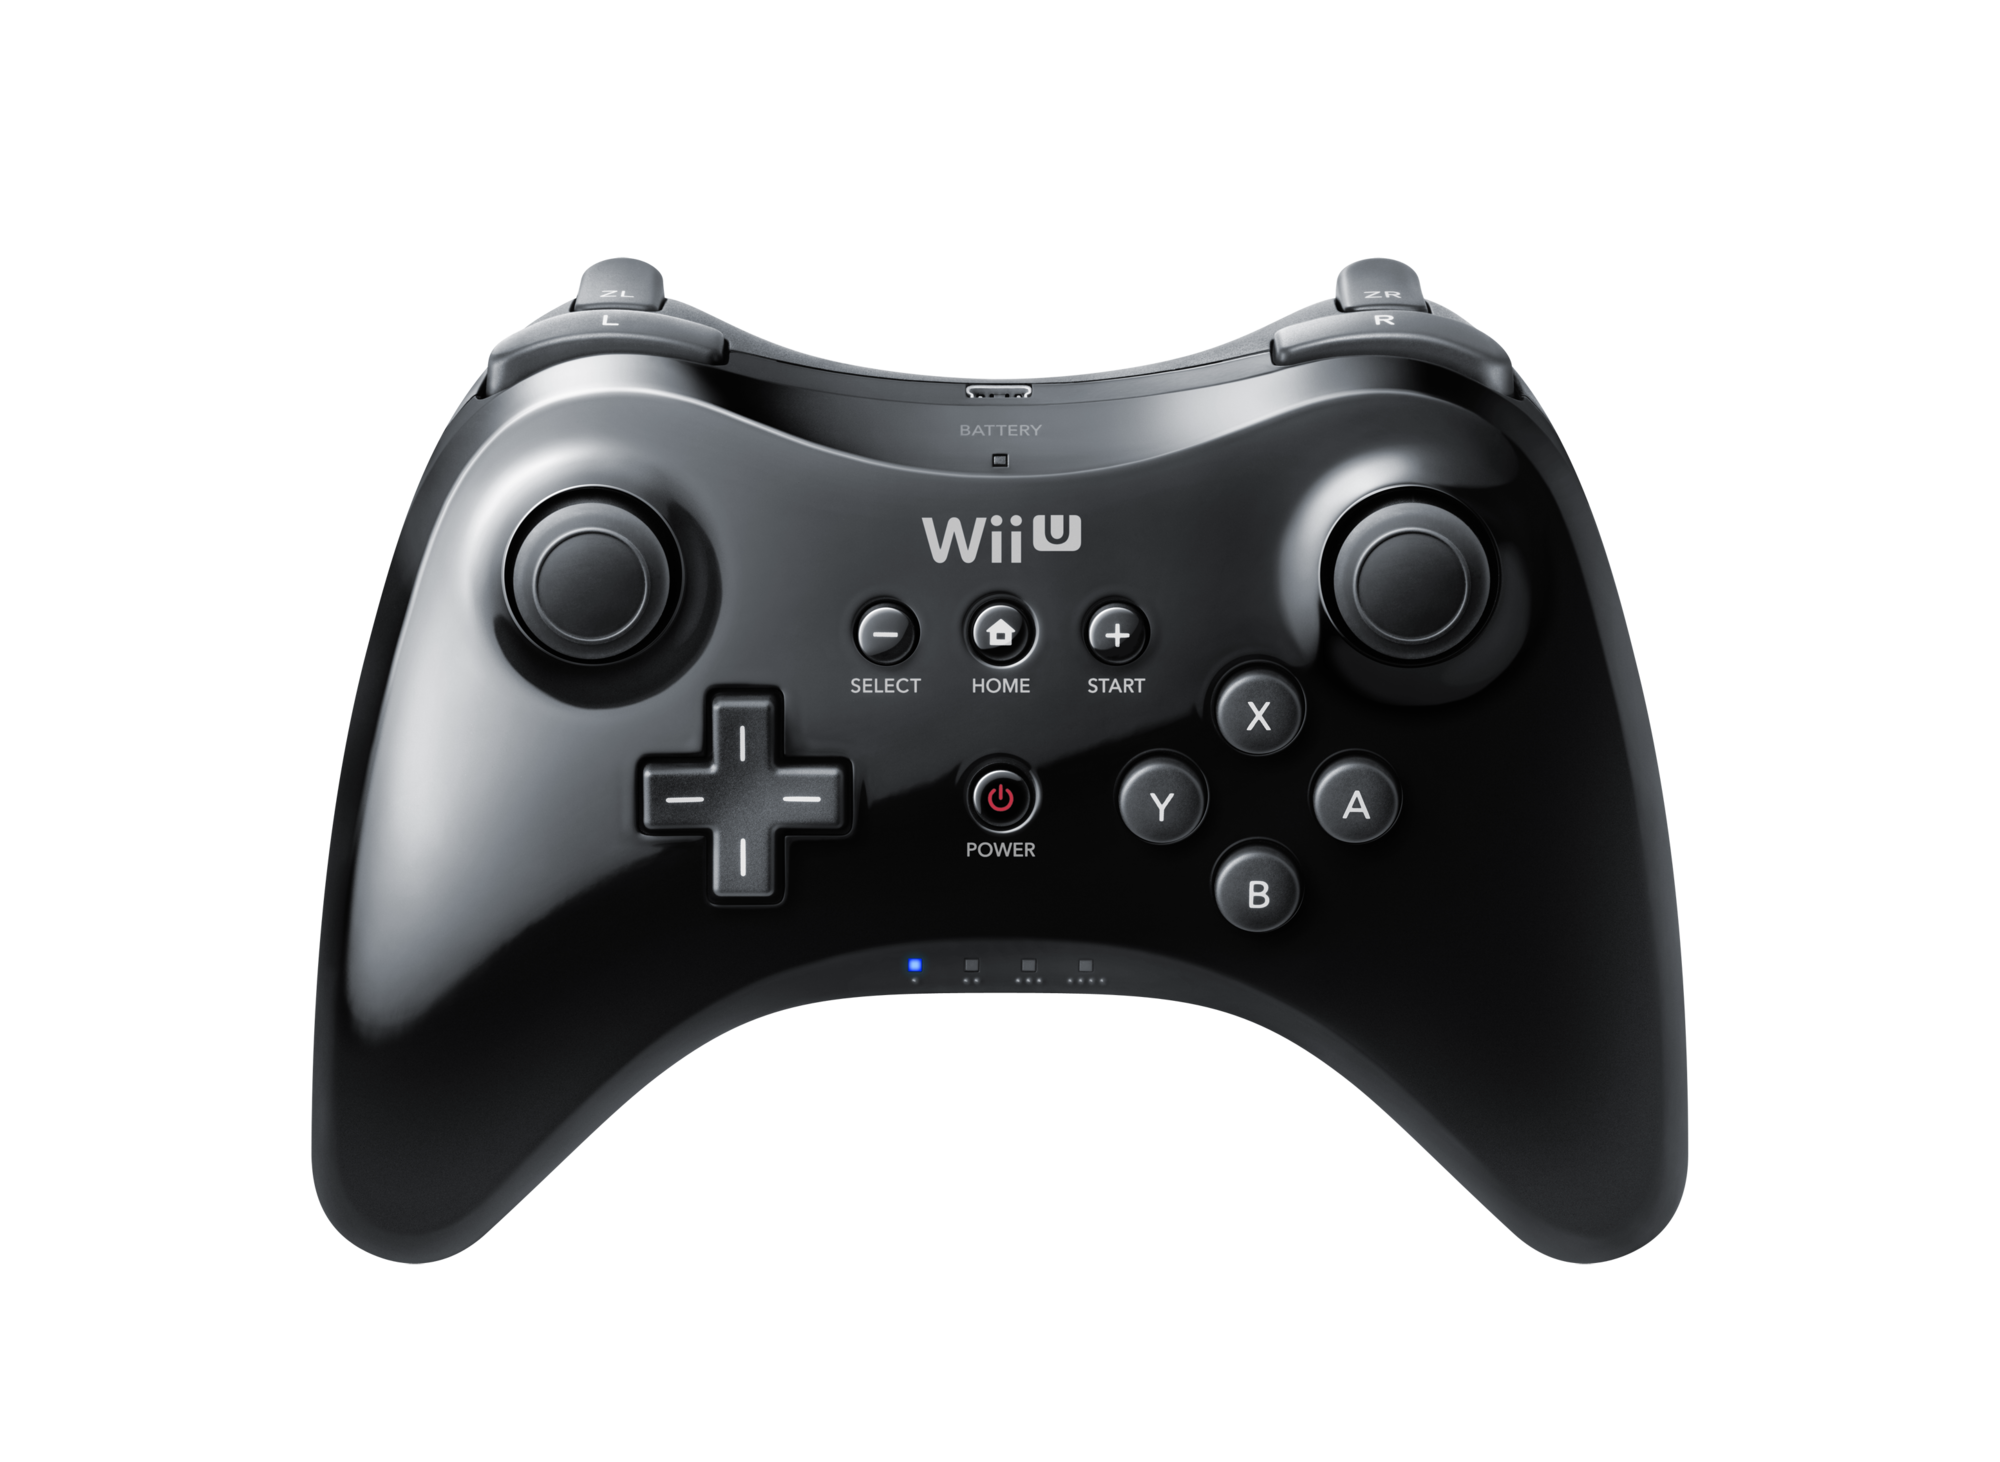 Image pro black nintendo. Wii u controller png vector black and white library